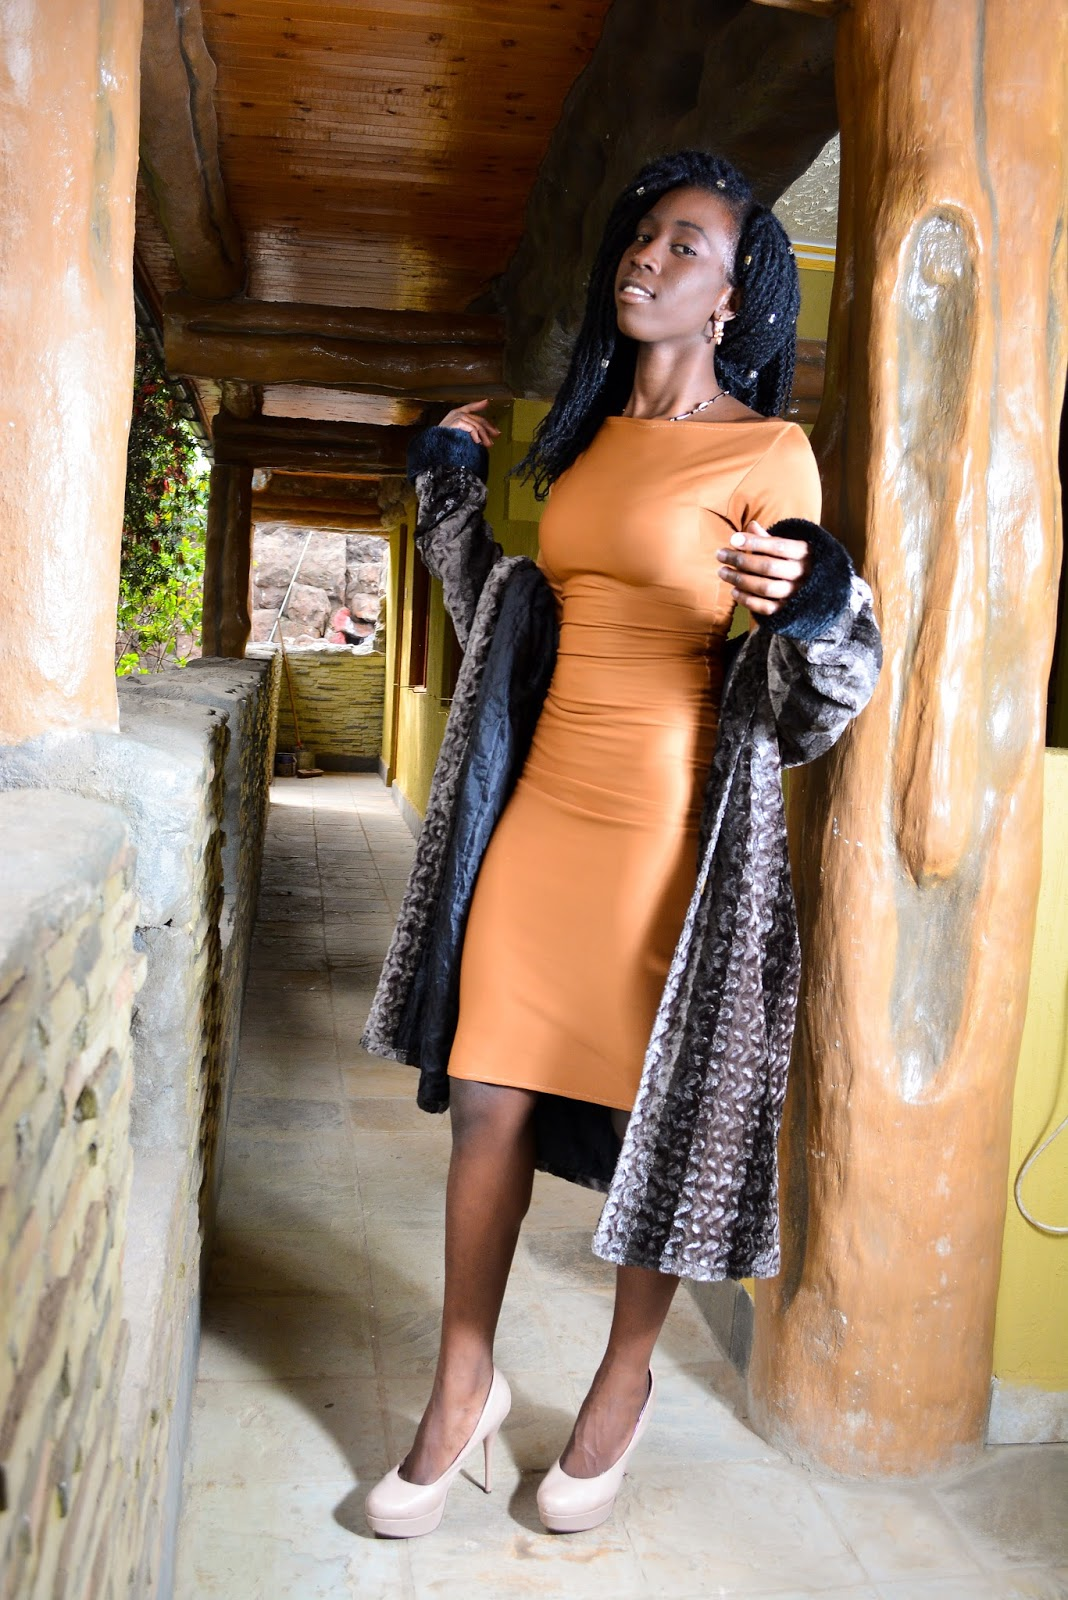 nude dress, how to style a nude dress, what to wear to a cofee date, what to wear to a milkshake meeting, style with ezil, kenyan fashion blogger, african fashion blogger, ezil, ezil boutique, buy nude dress in kenya